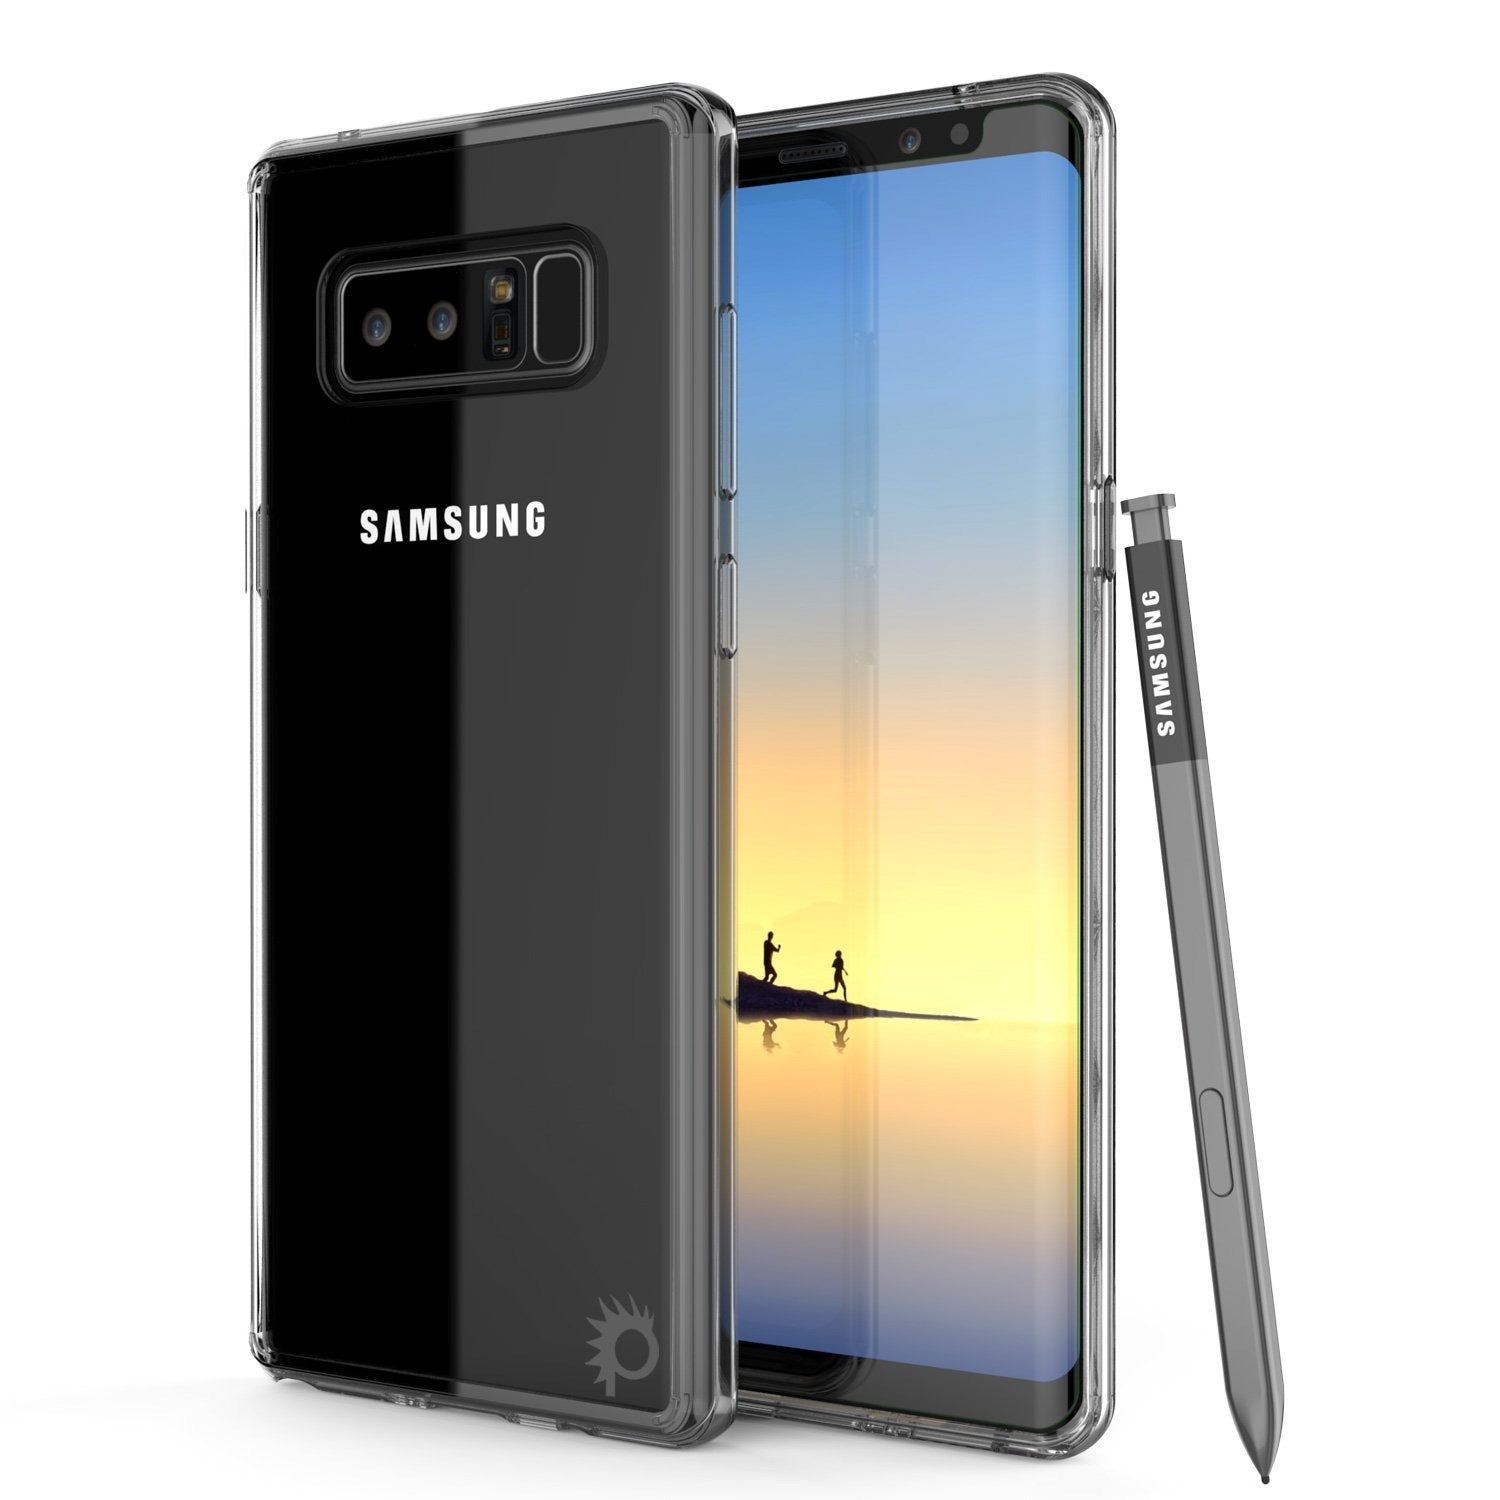 Galaxy Note 8 Punkcase, LUCID 2.0 Series Armor Cover, [Crystal Black]